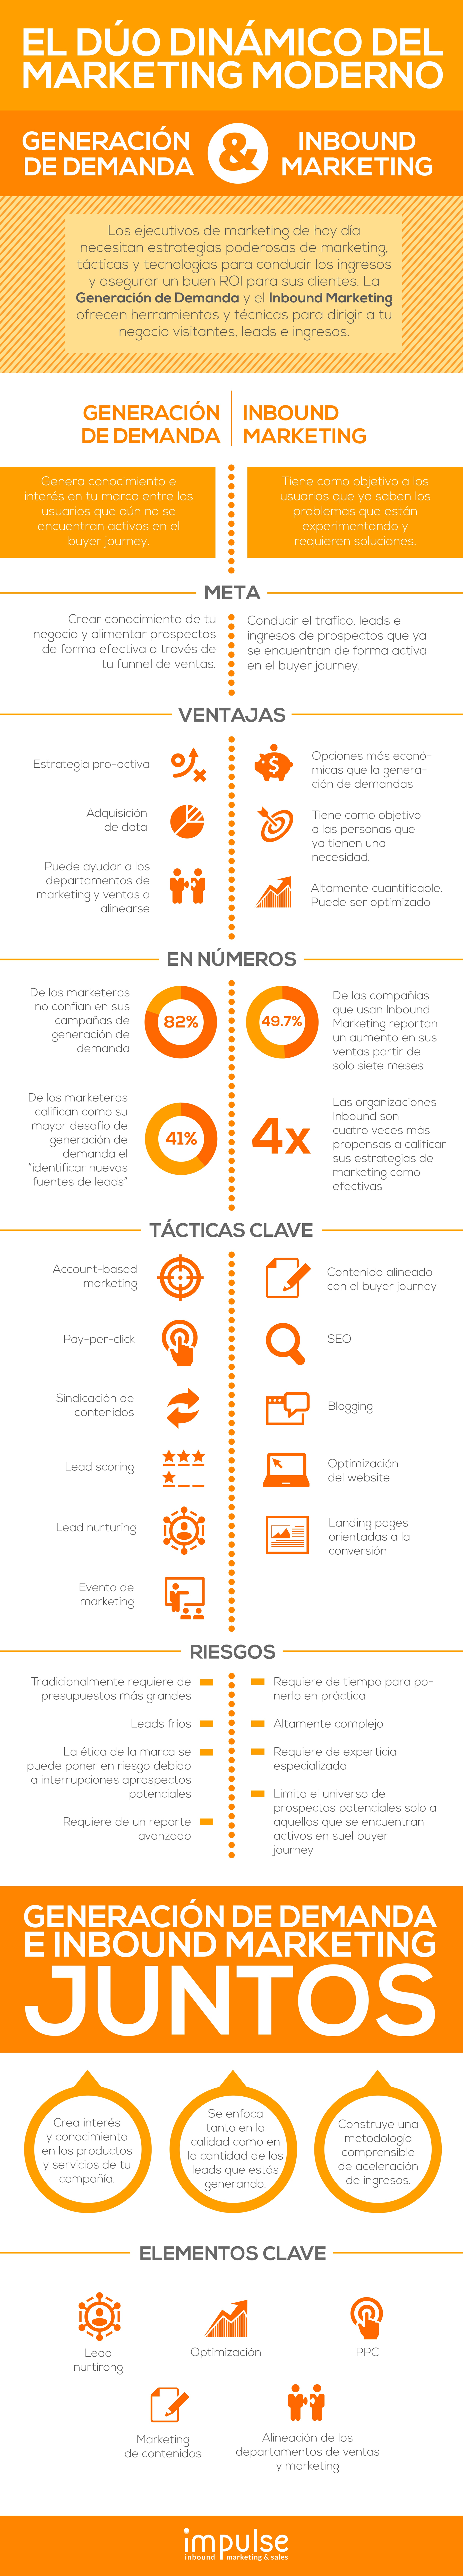 Infografia-DuoDinamico-Generacion-de-demanda-Inbound-Marketing.jpg